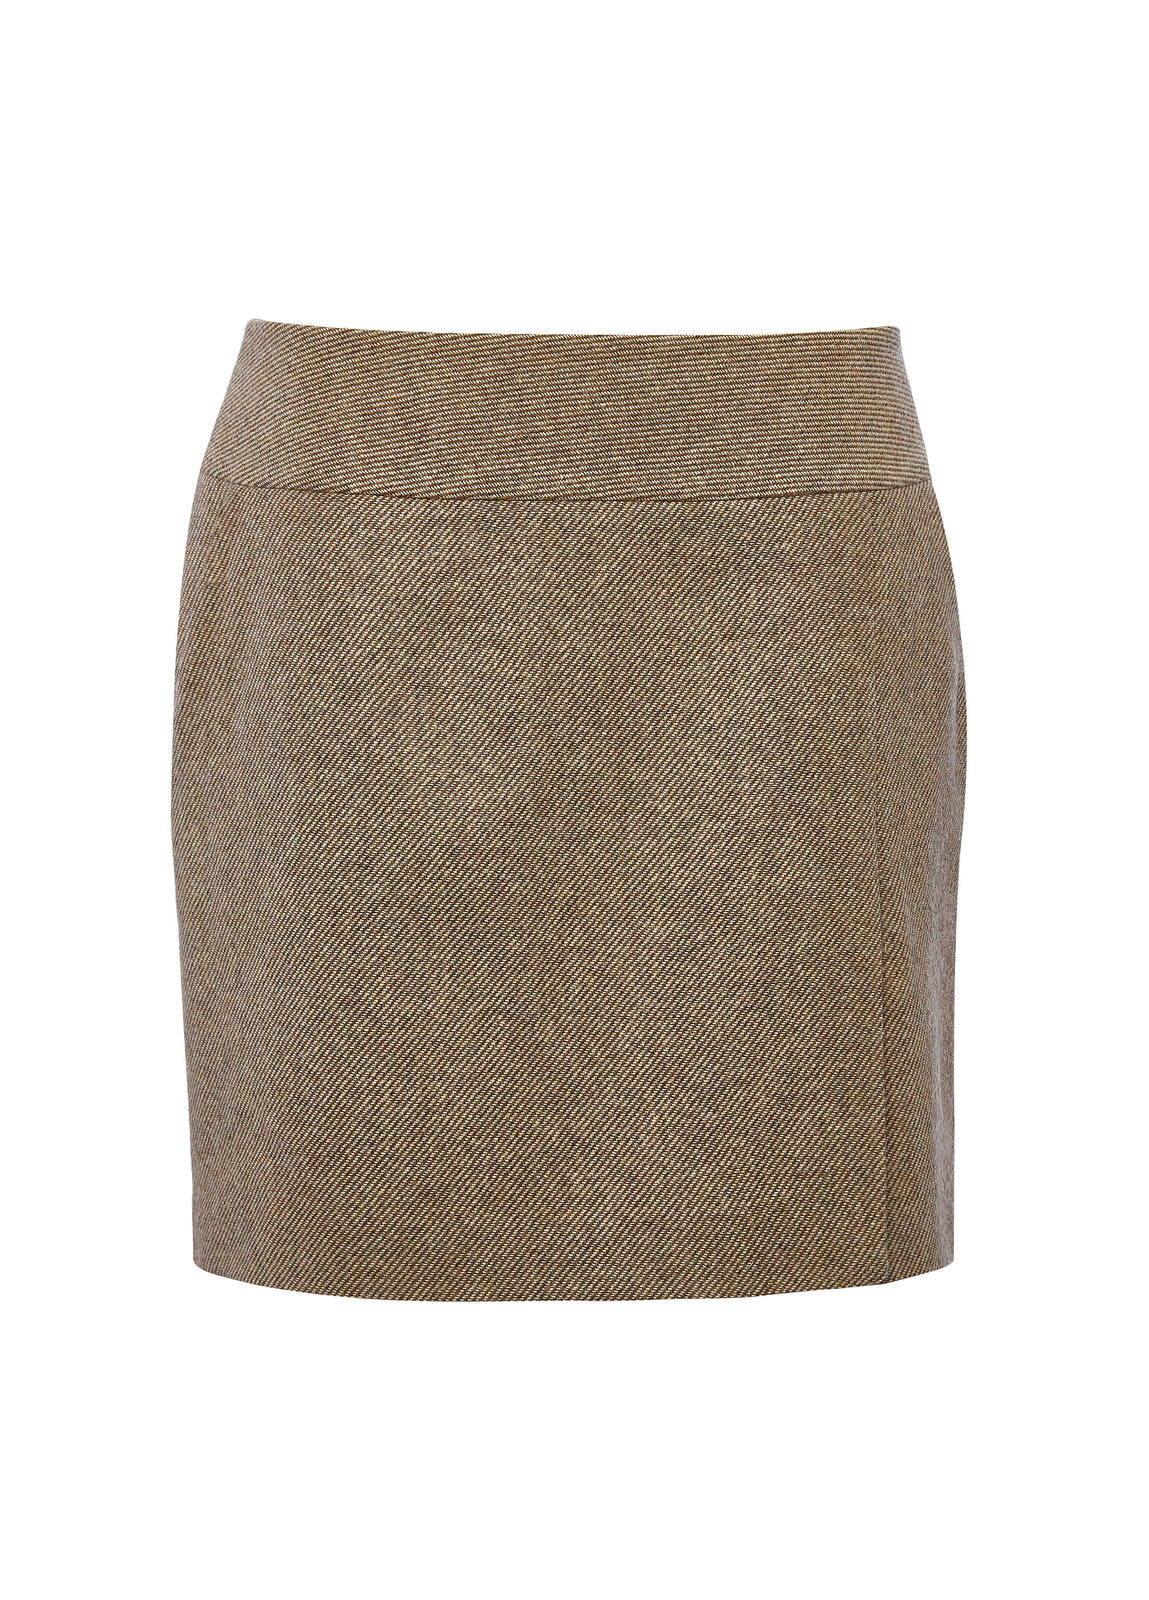 Bellflower_Tweed_Skirt_Various_Image_1